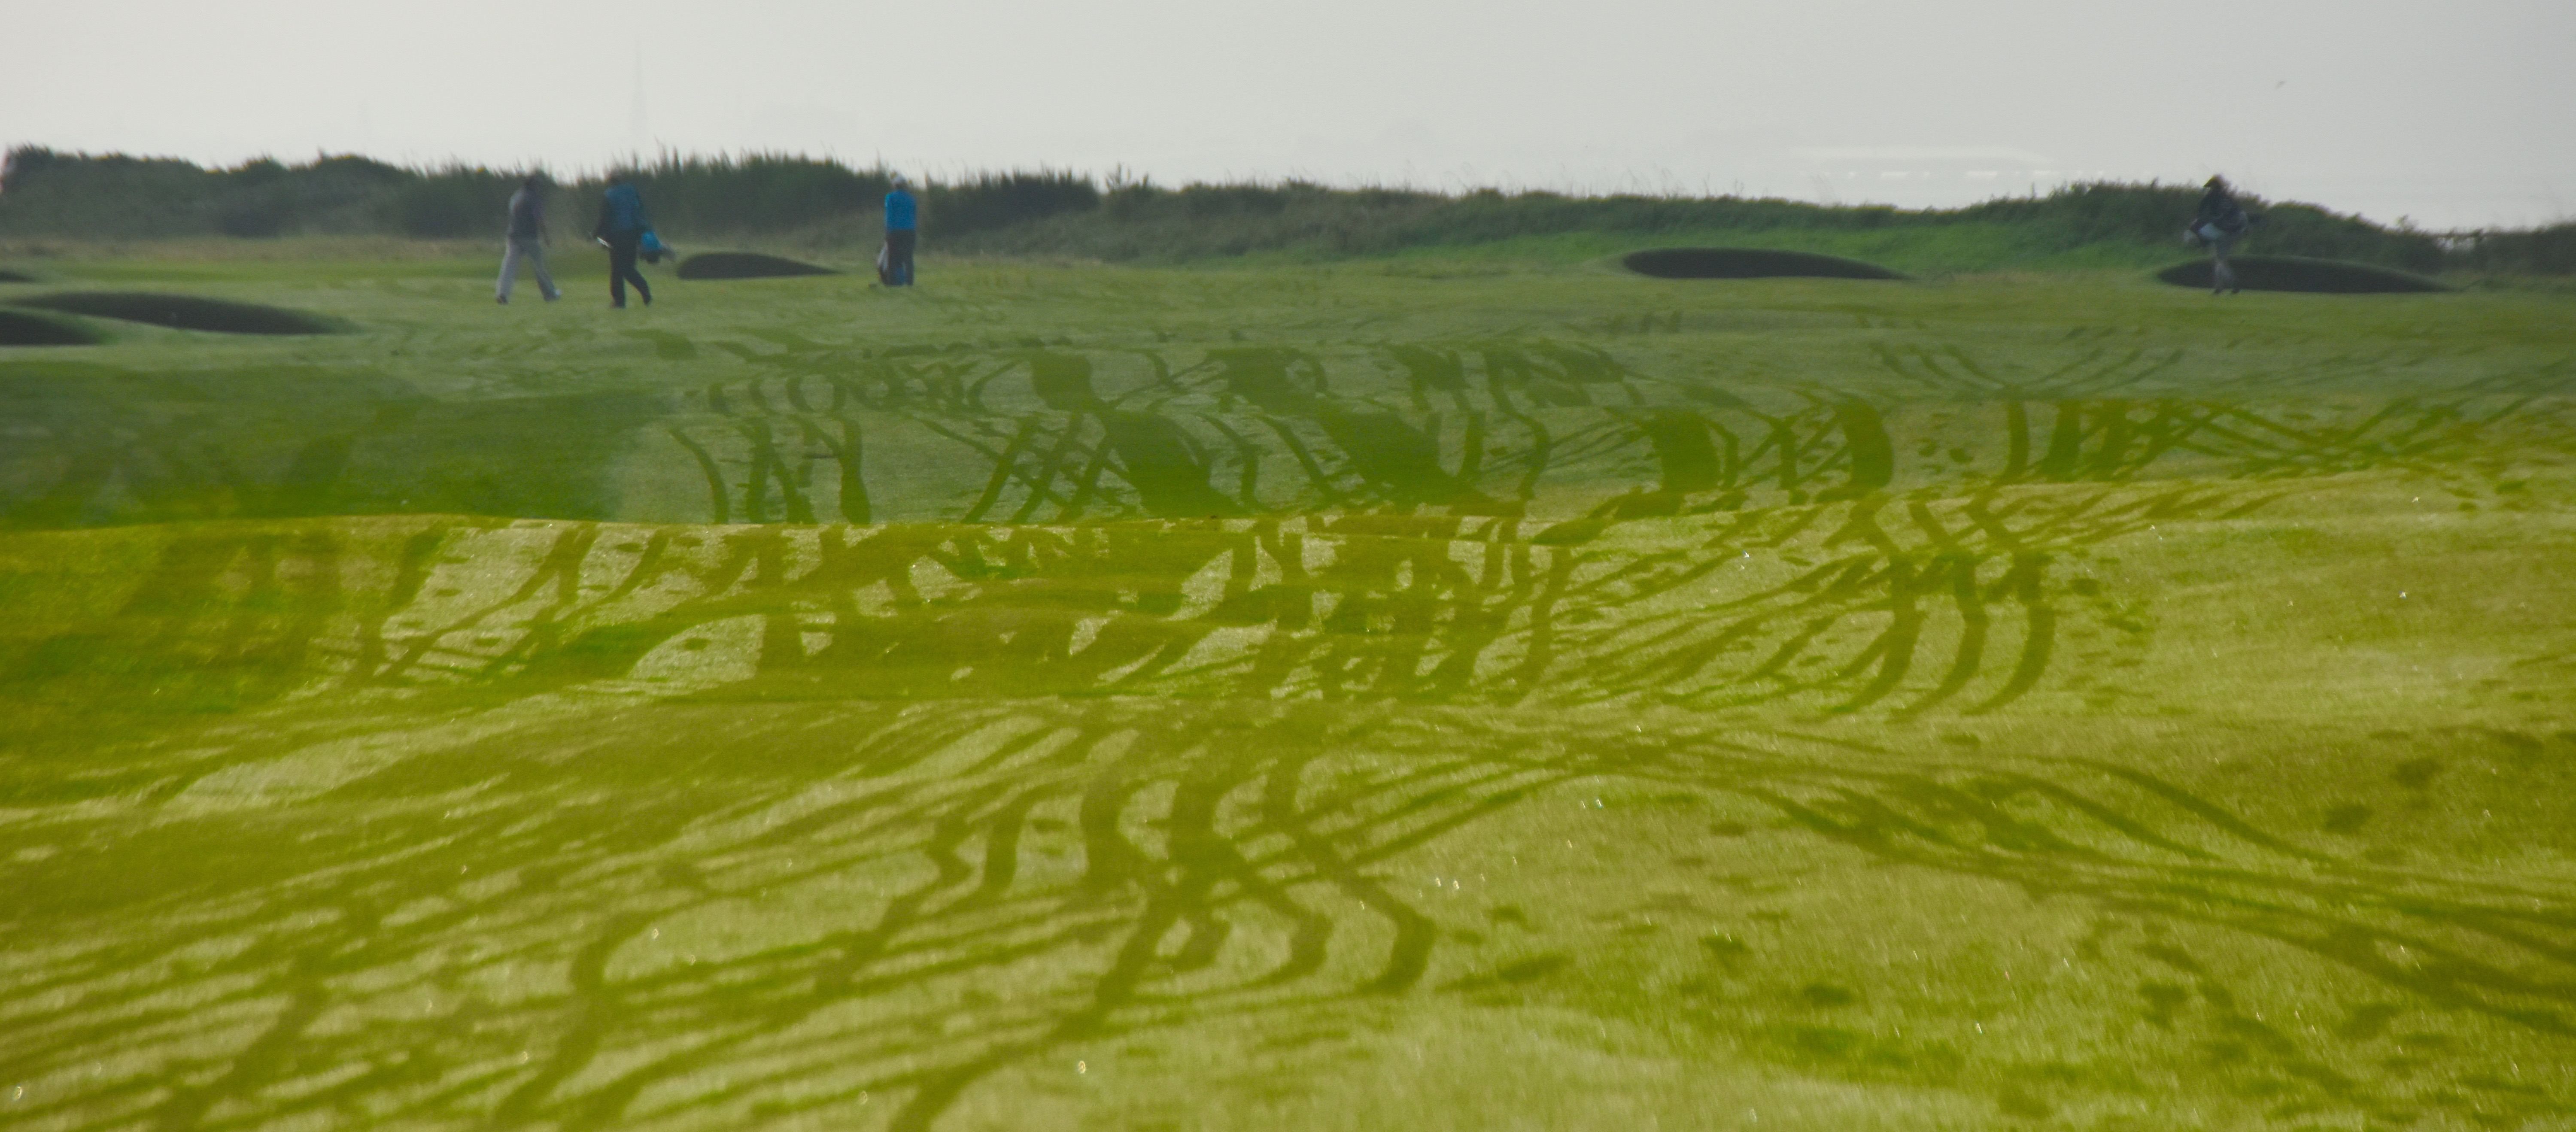 No. 1 - Seal, Old course, Troon